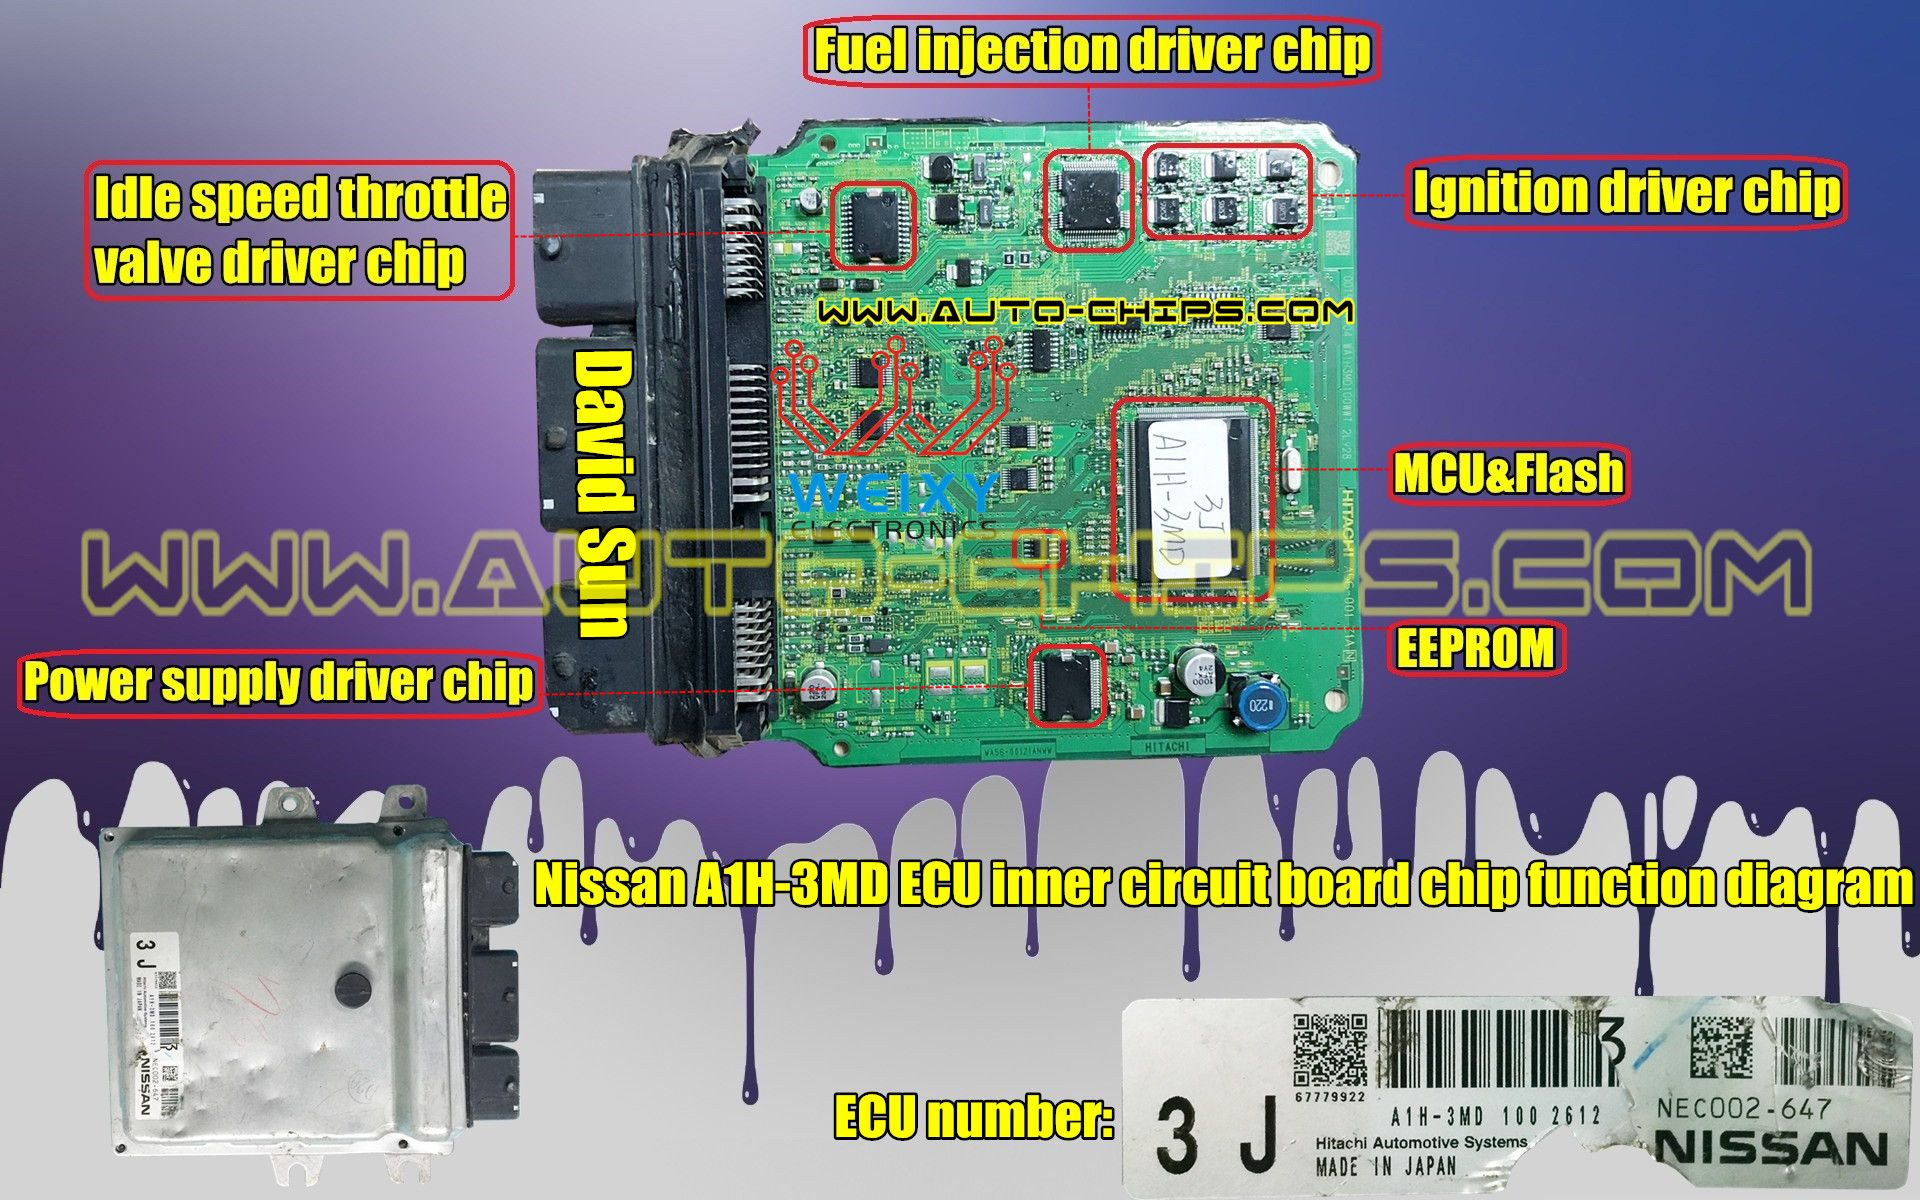 small resolution of nissan a1h 3md ecu inner circuit board chip function diagram we supply all kinds of